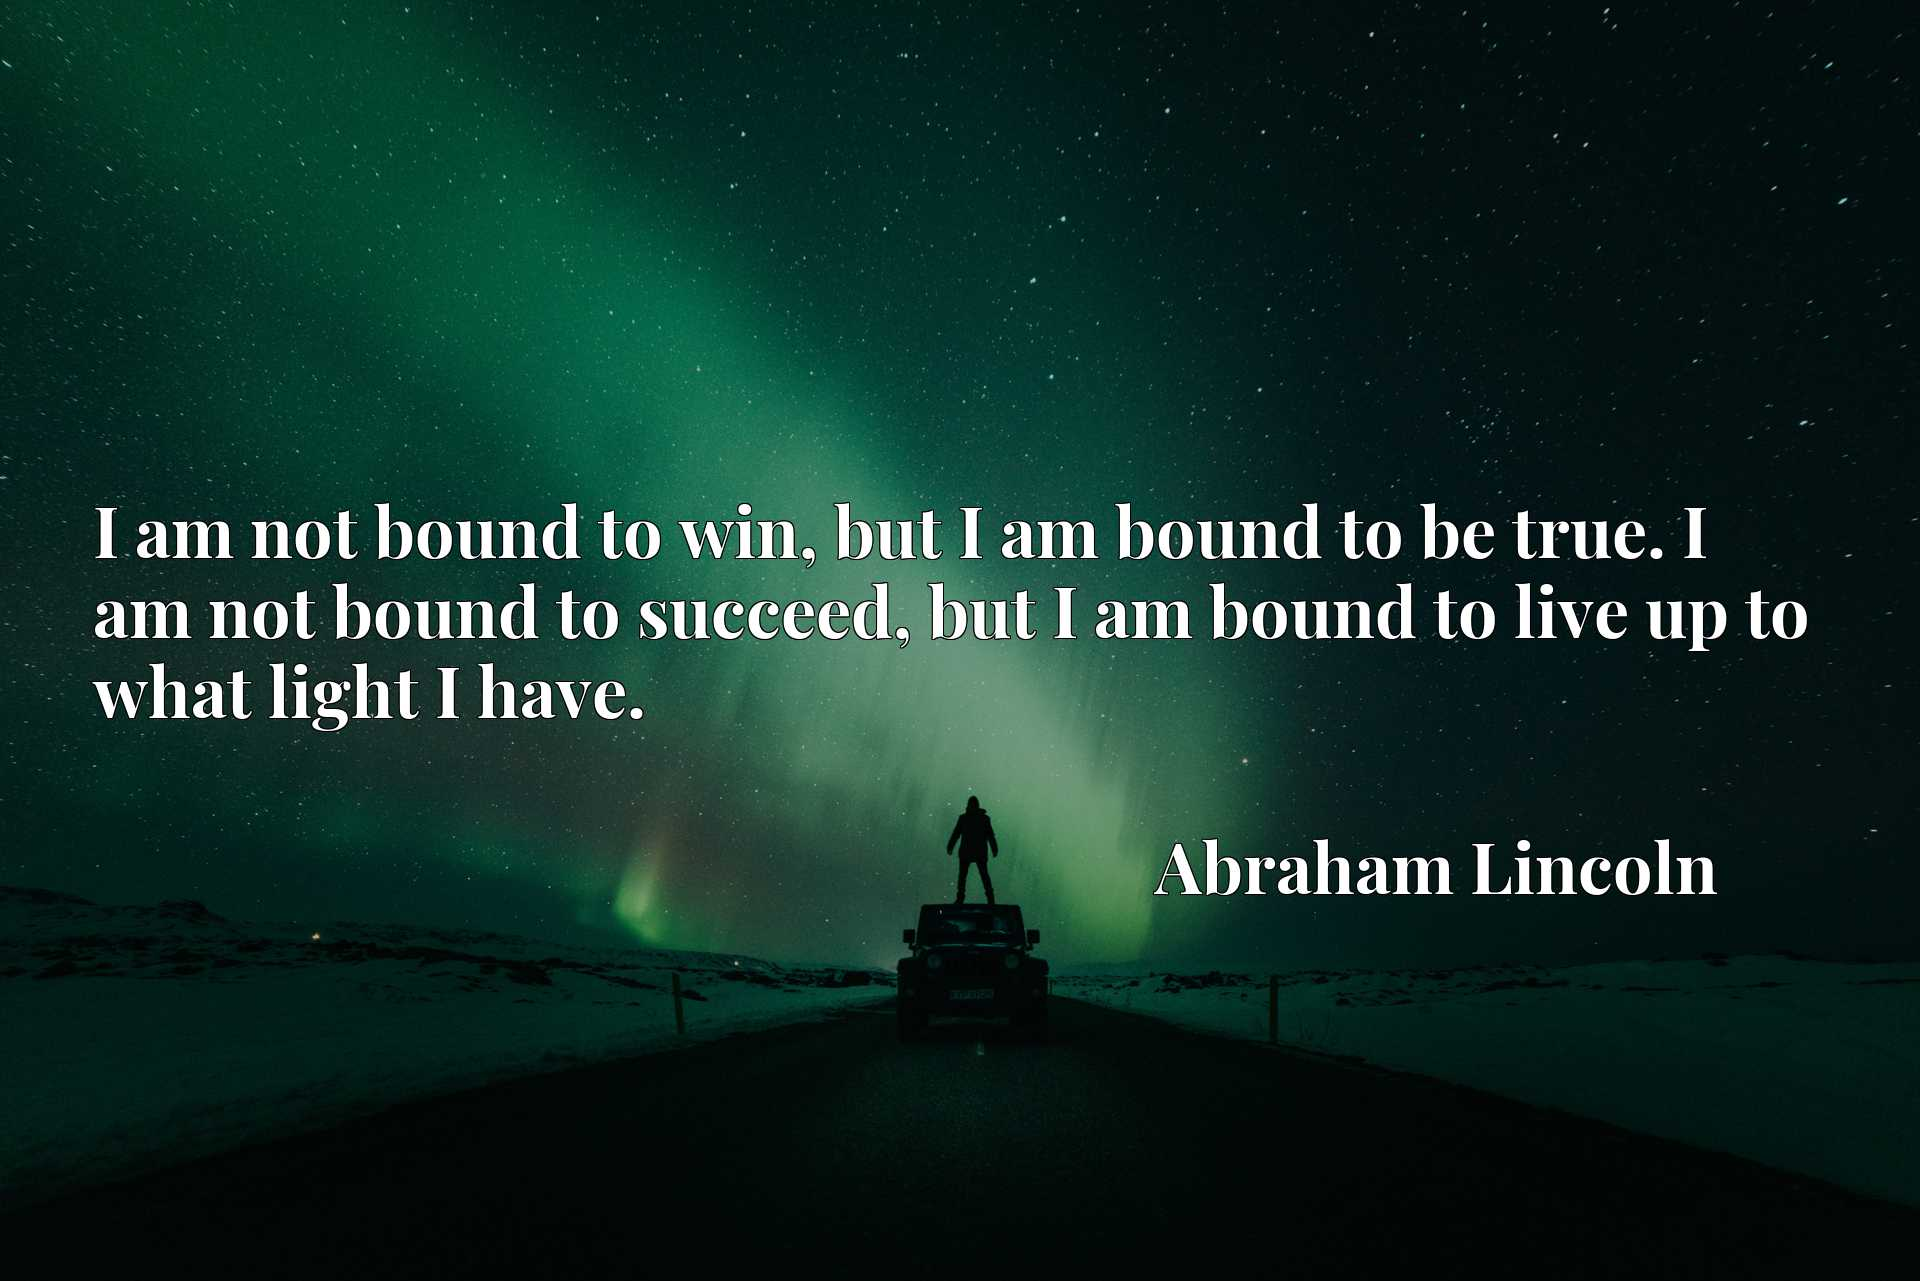 I am not bound to win, but I am bound to be true. I am not bound to succeed, but I am bound to live up to what light I have.